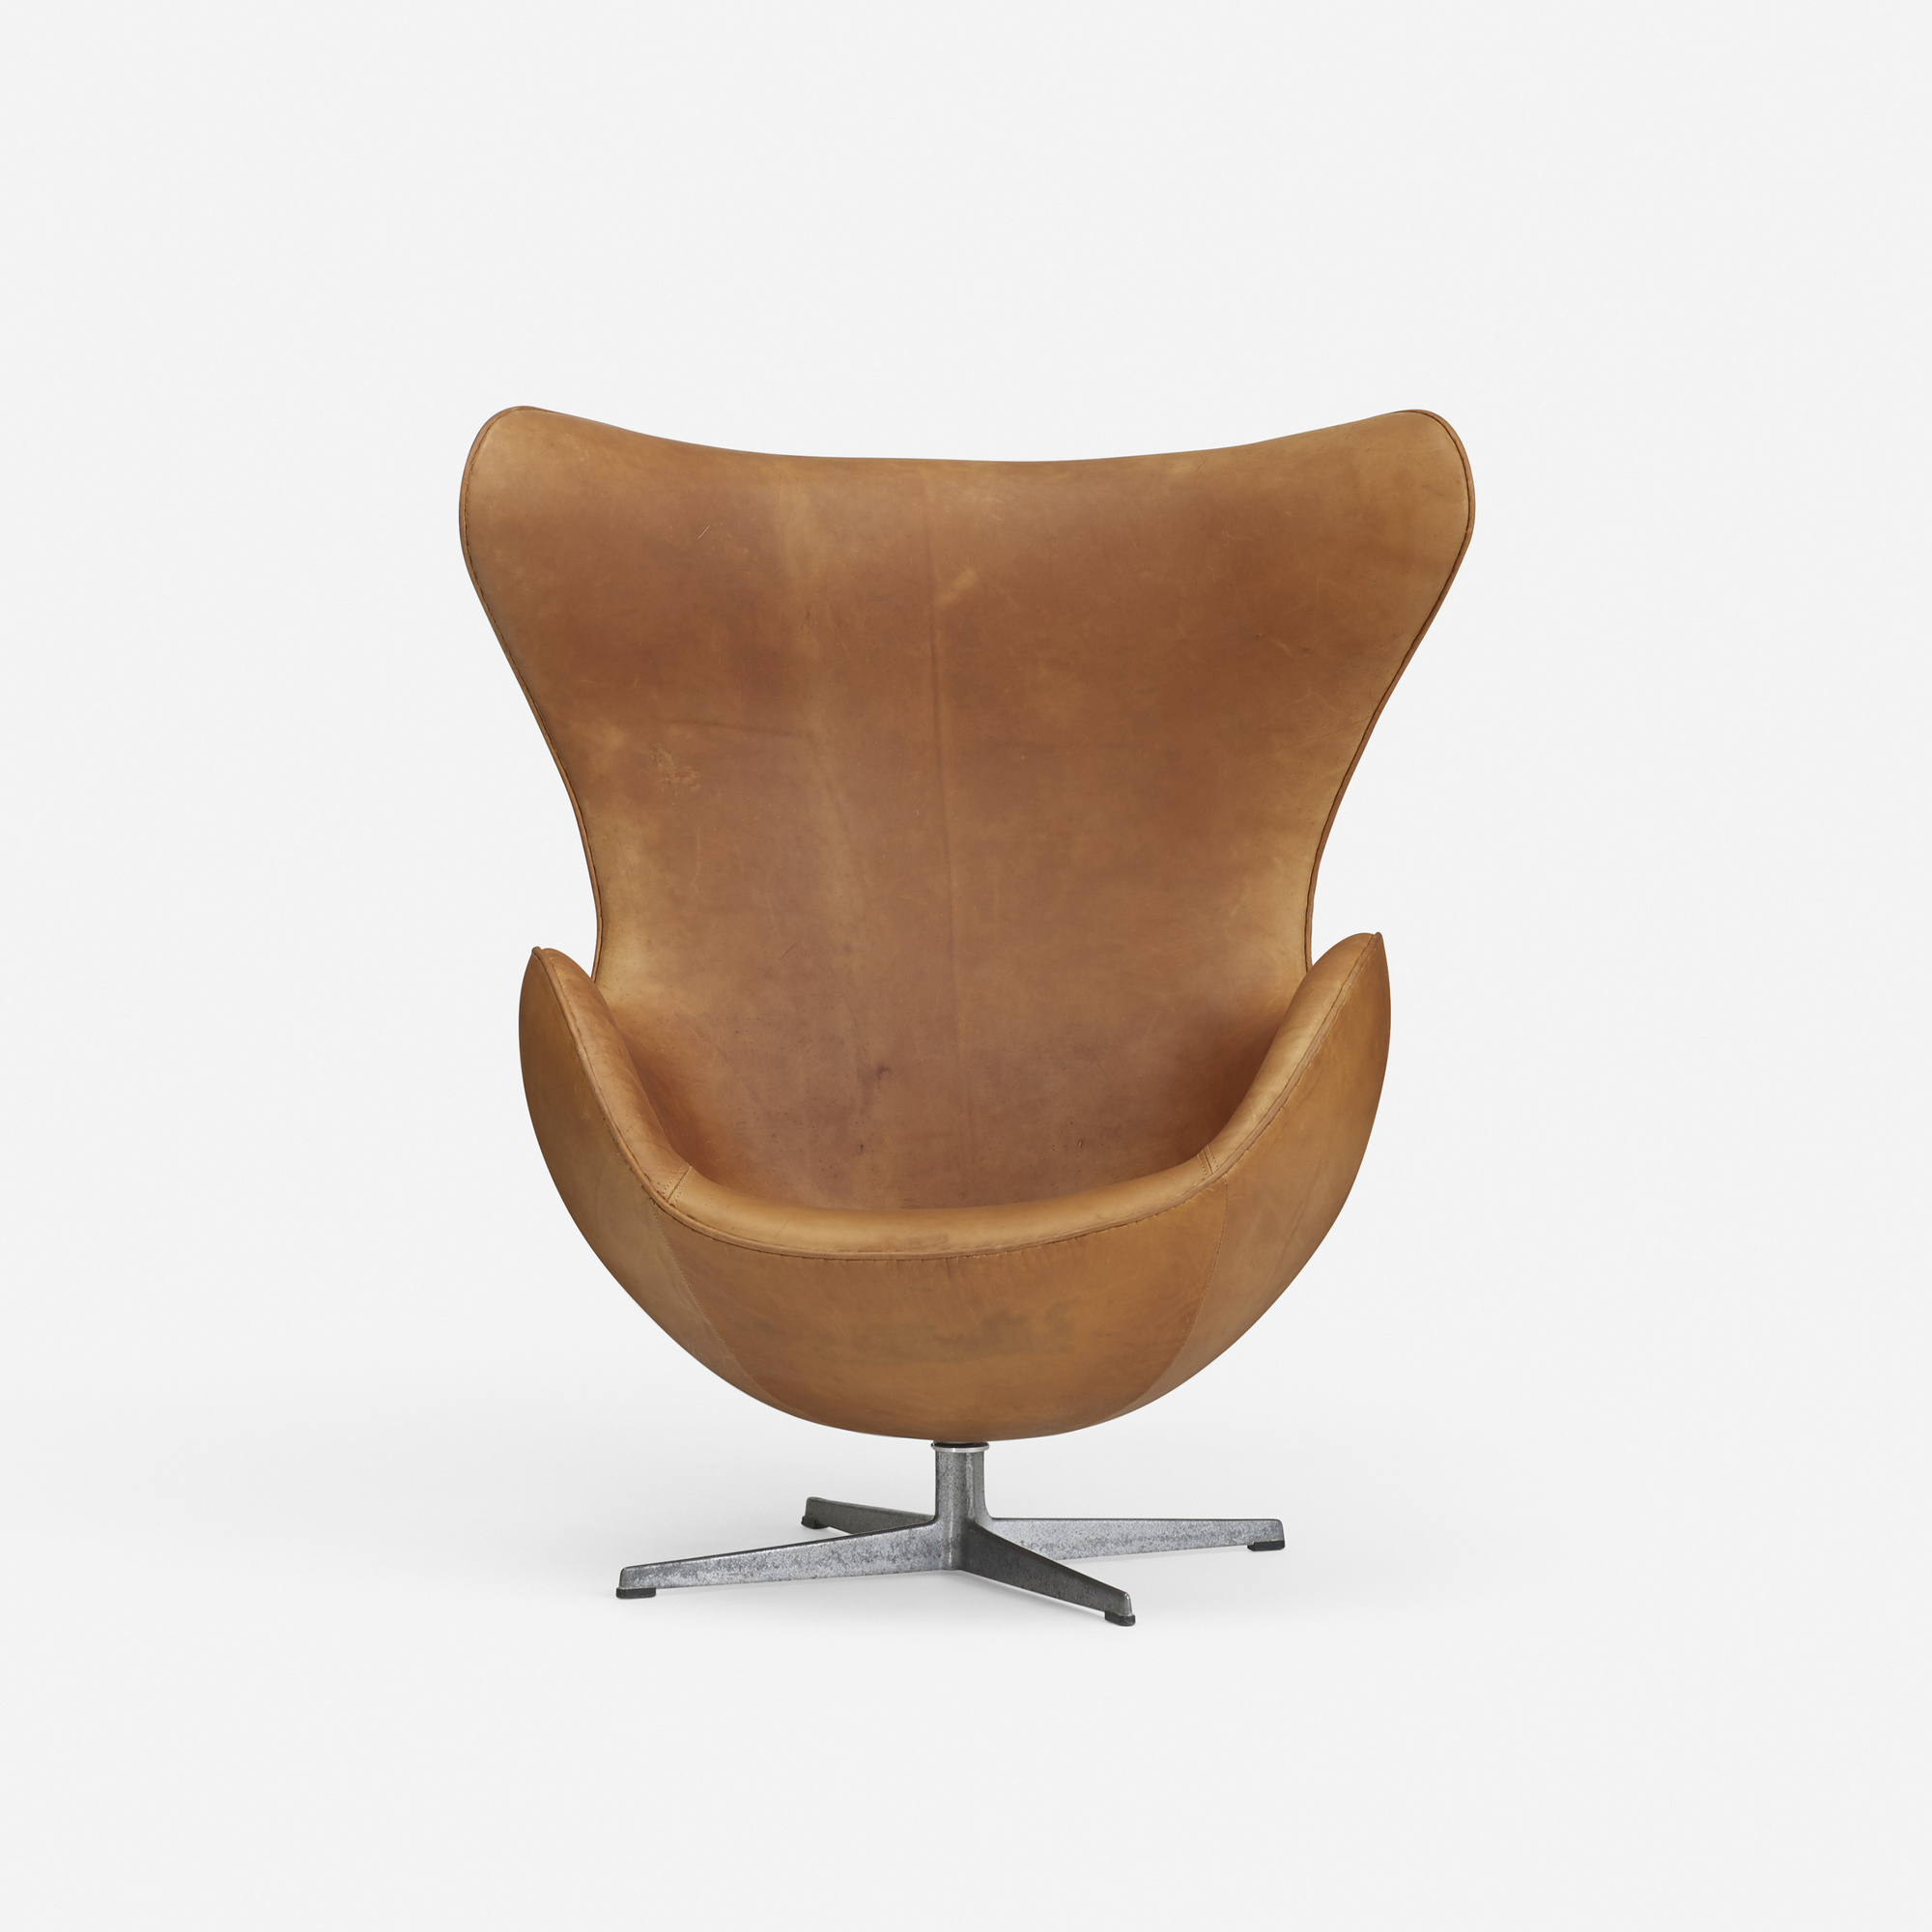 Arne jacobsen egg chair leather -  325 Arne Jacobsen Egg Chair 2 Of 4